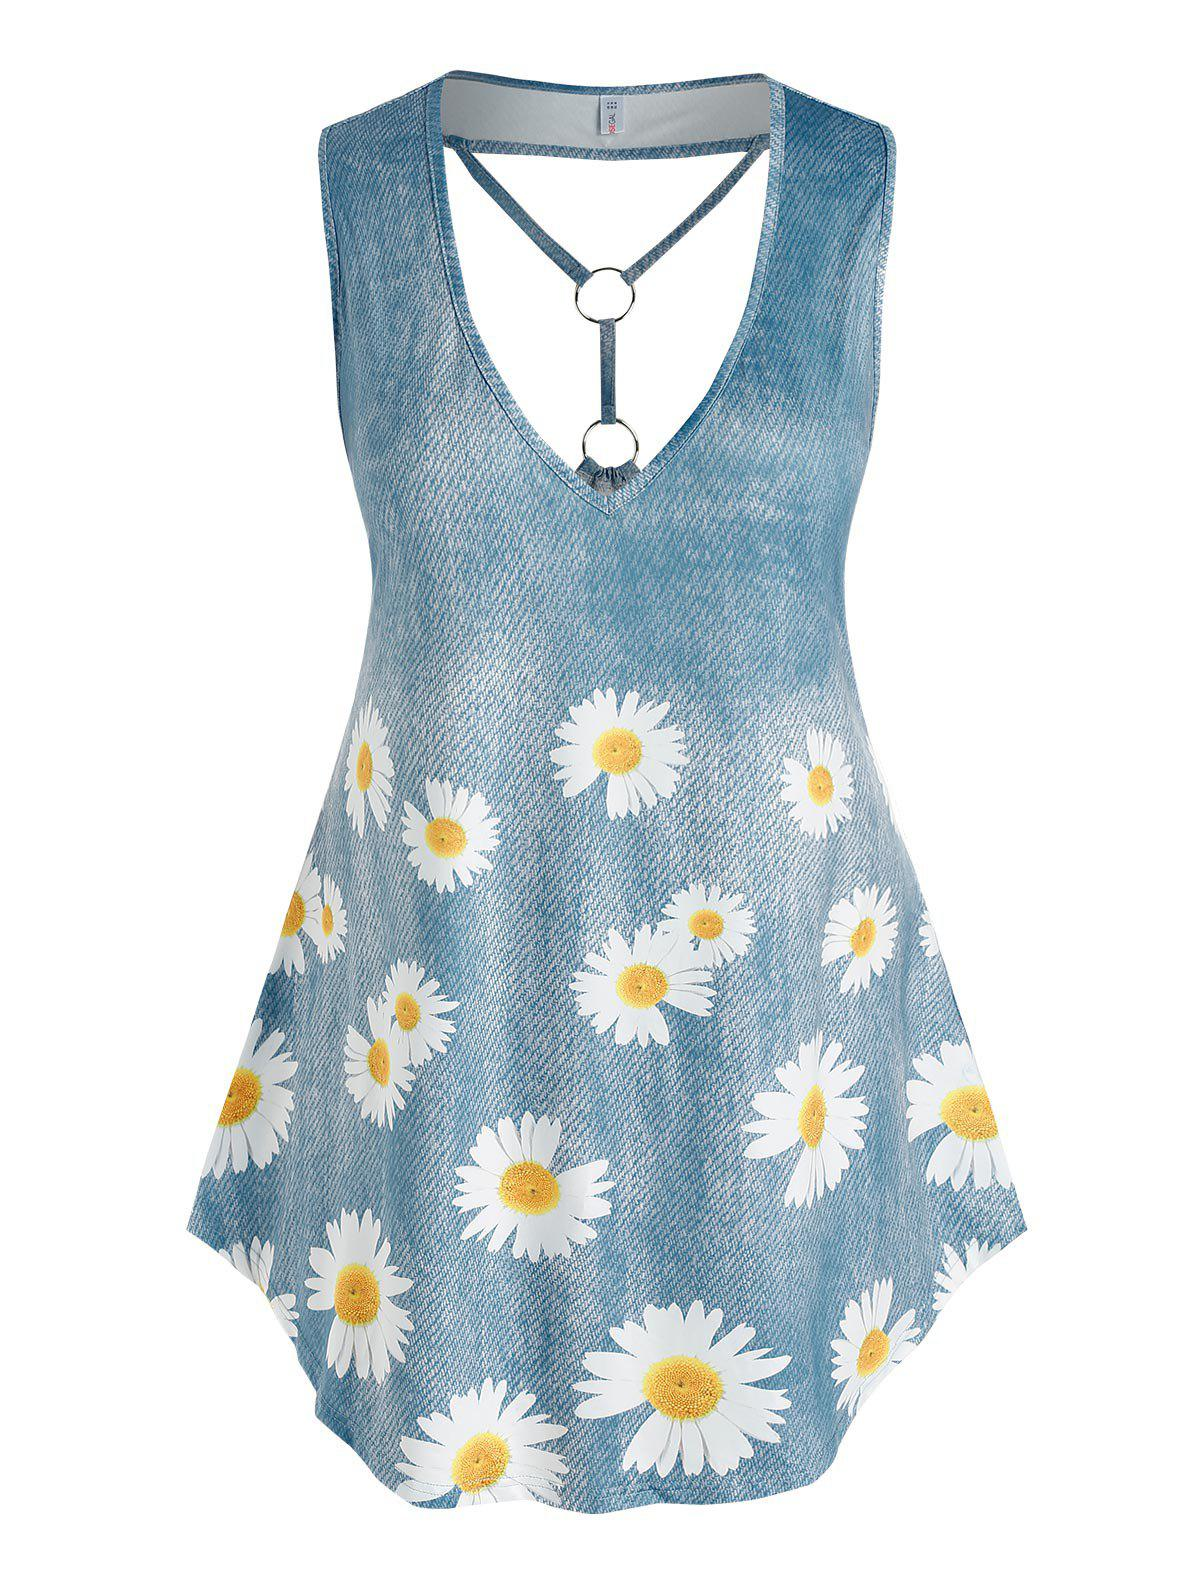 Latest Plus Size Daisy Print Plunging Neckline O Ring Tank Top